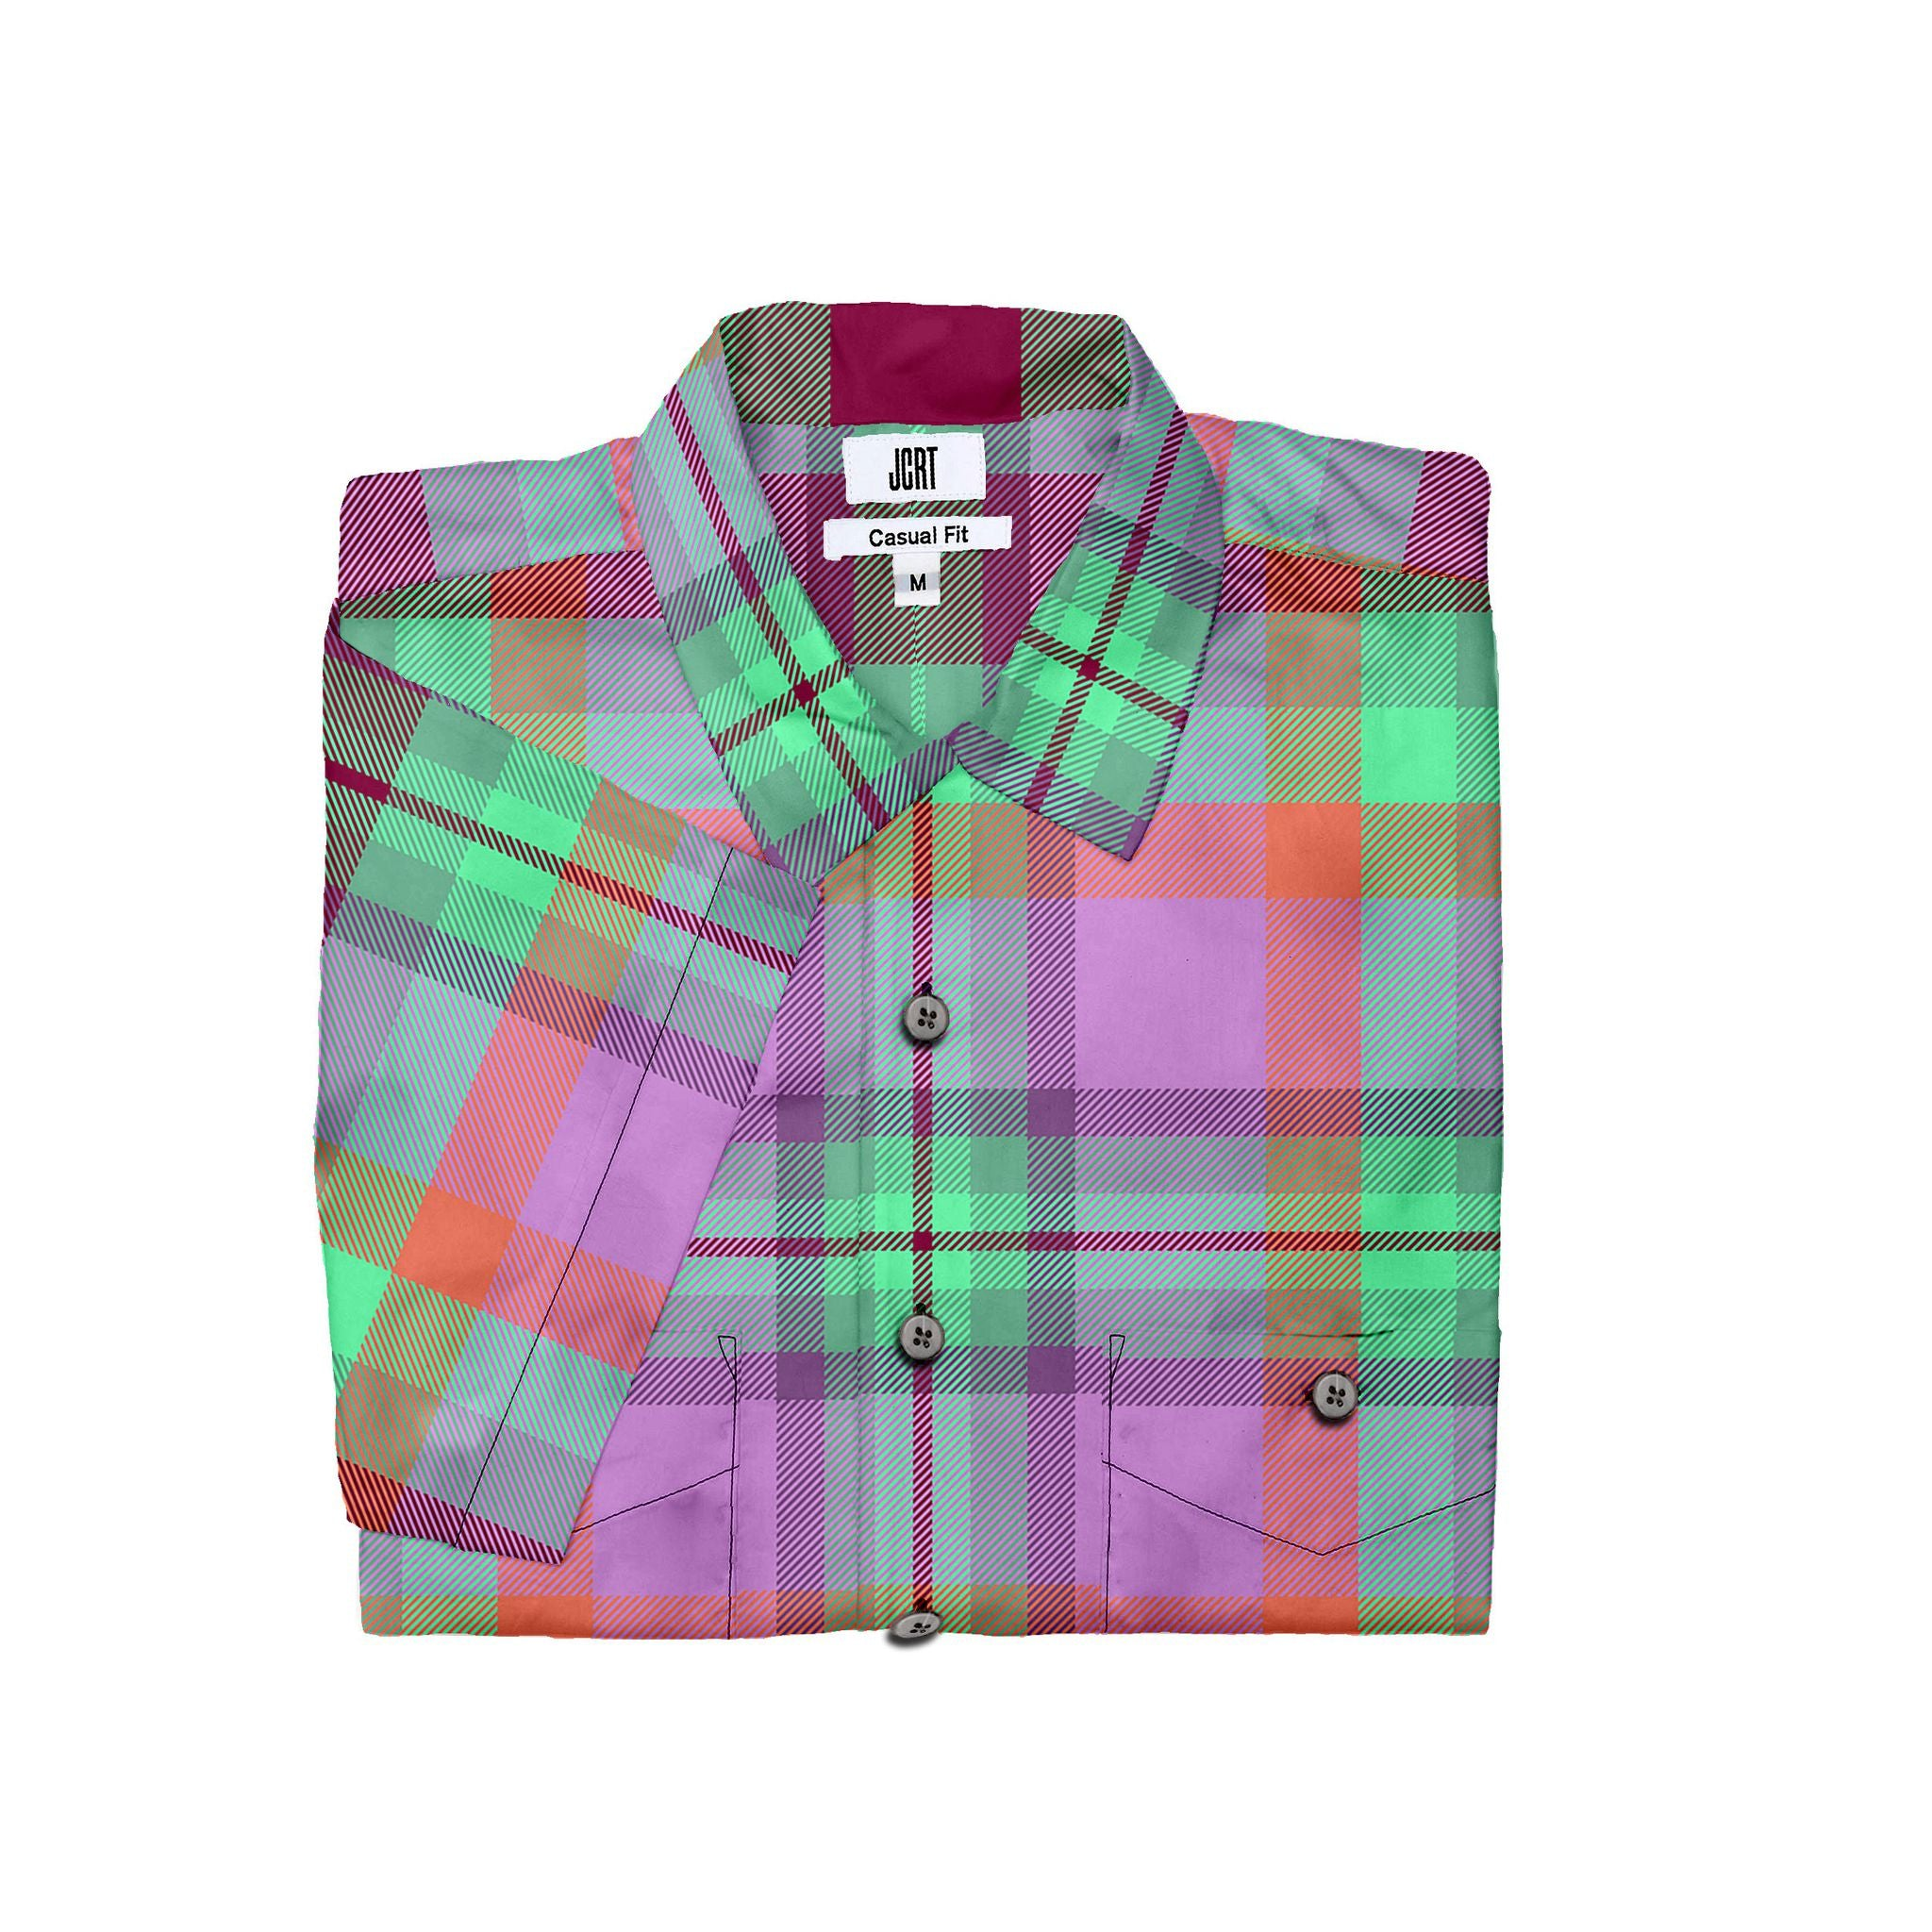 The JCRT Stubbs & Wootton Pink Plaid Short Sleeve Shirt